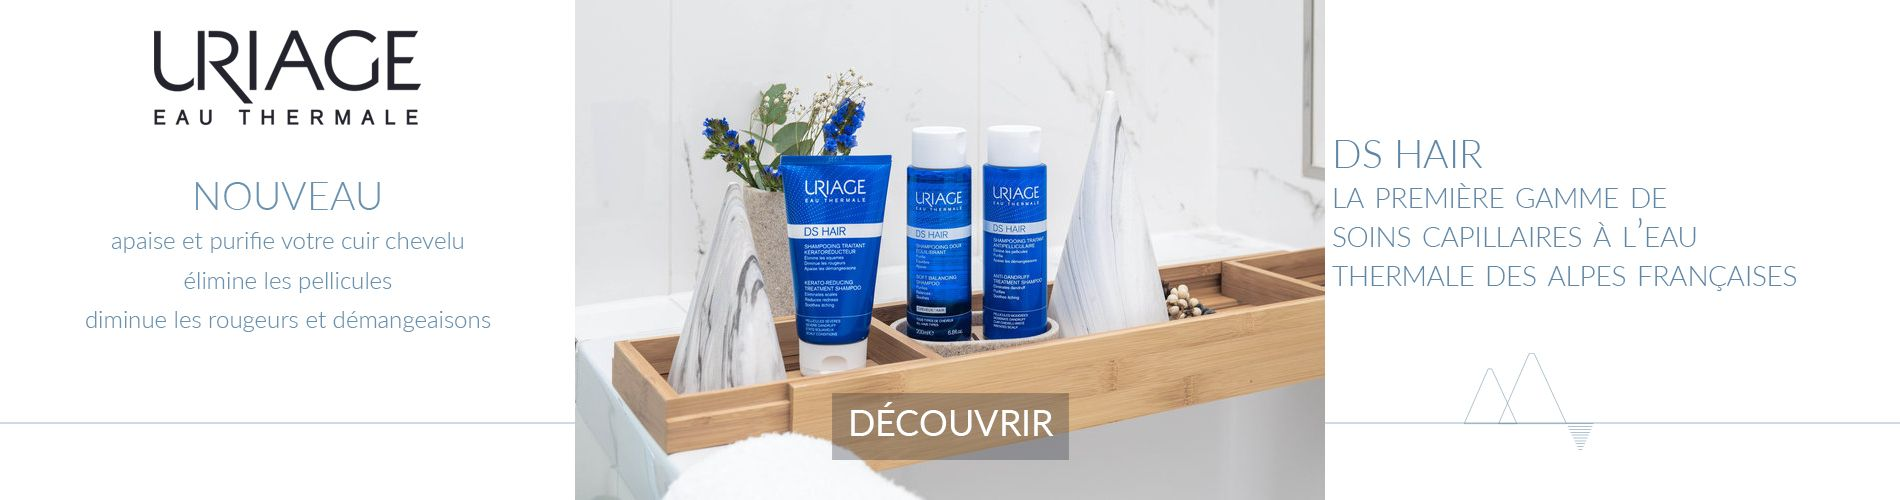 Uriage DS HAIR : soins capillaires et antipelliculaires